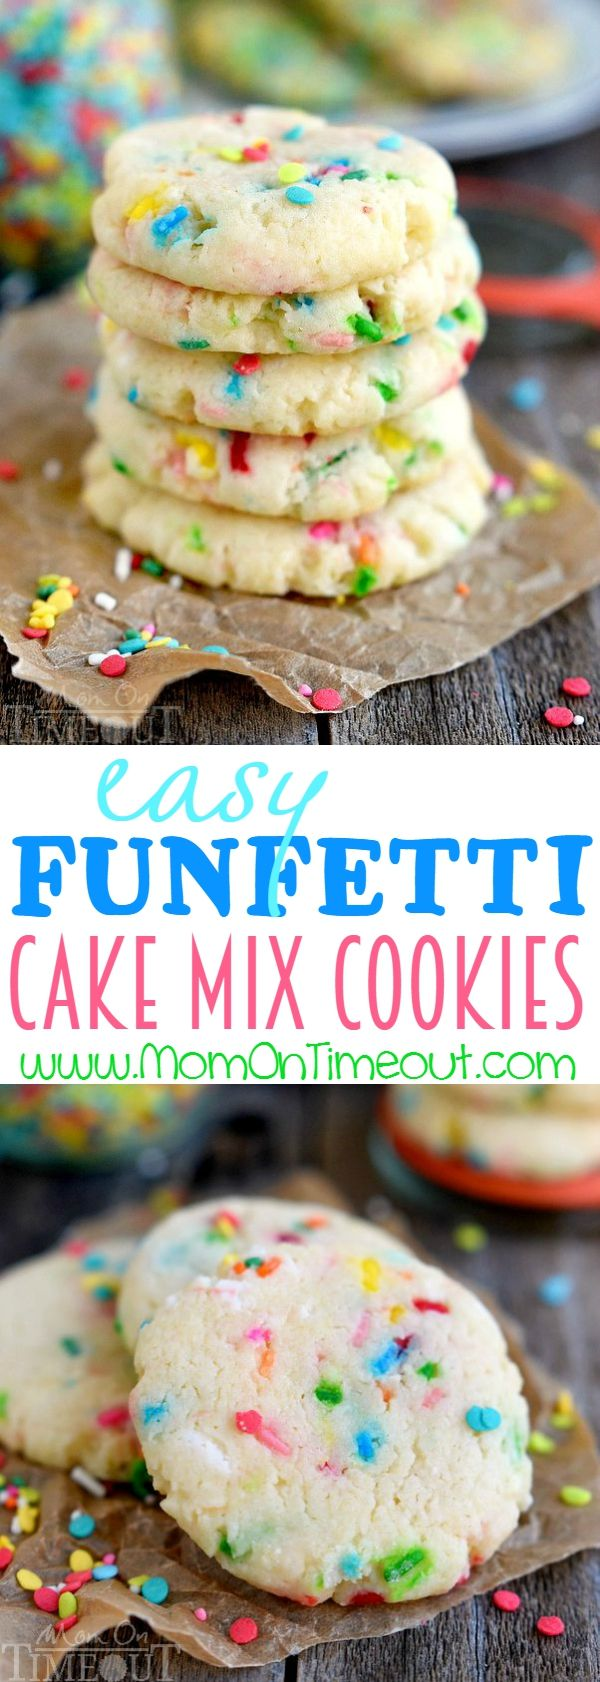 Easy Funfetti Cake Mix Cookies! Perfect for birthdays, picnics, parties and more, these cookies are so easy to make and wonderfully delicious! Made with cream cheese for an extra moist and delightful cookie recipe! | MomOnTimeout.com | #cookie #recipe